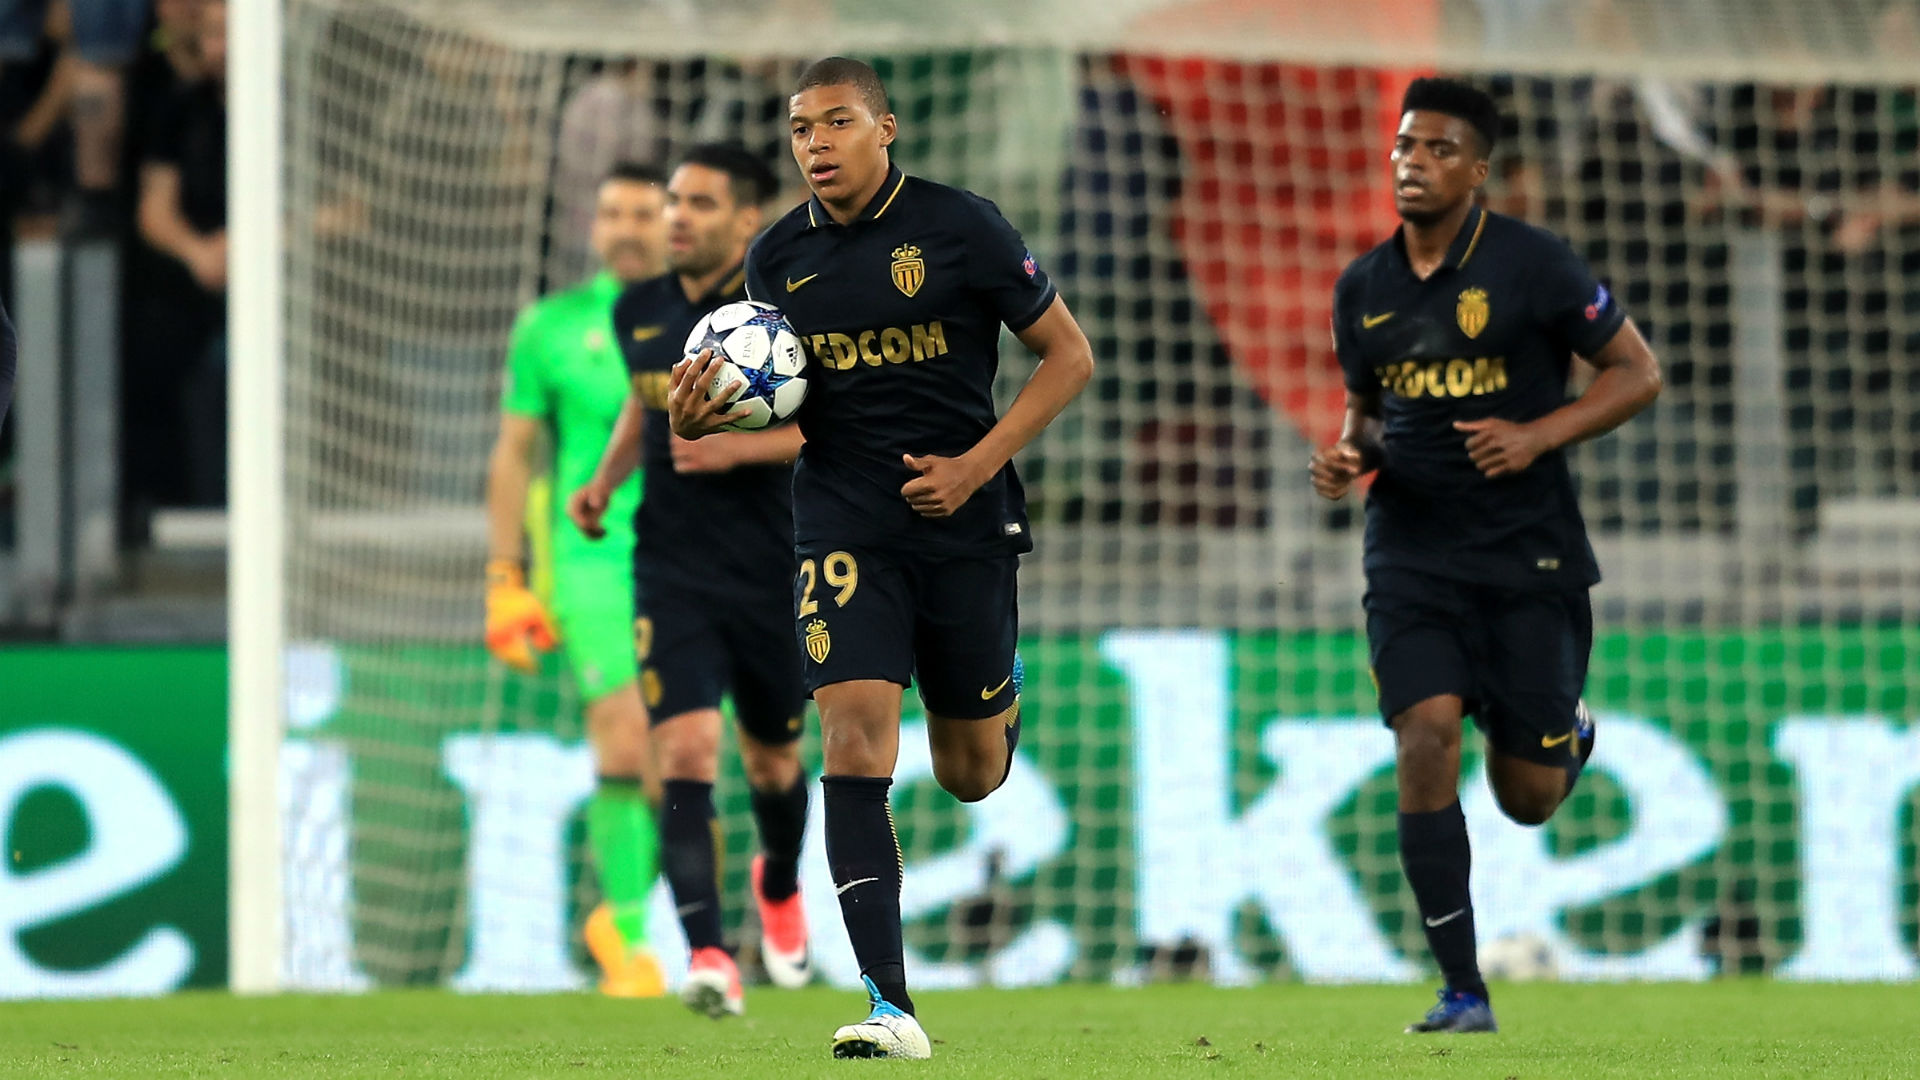 Champions League: Juventus eliminate Monaco, qualify for final